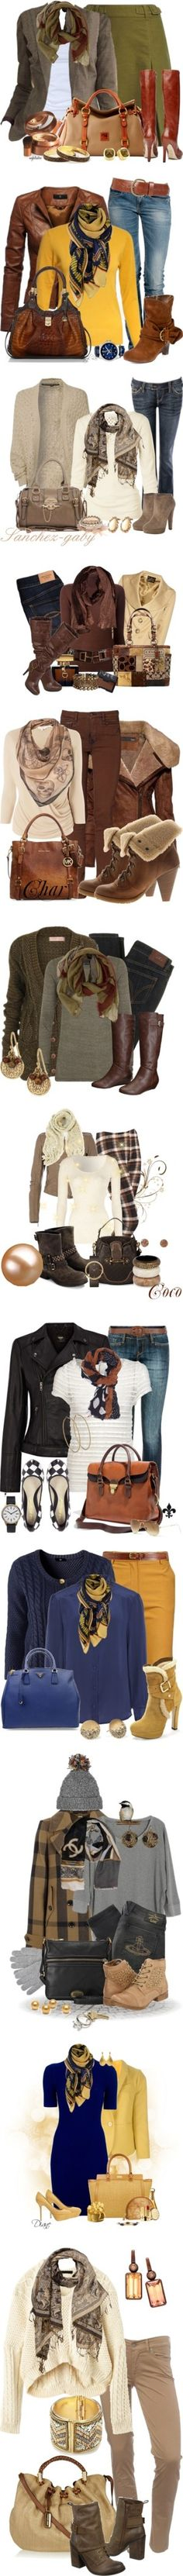 combination of clothes,outfit,women outfit,women clothes,fashion,style,moda,women clothes combination,wear,what to wear,picture, (20) http://imgsnpics.com/combination-of-clothes-picture-26/